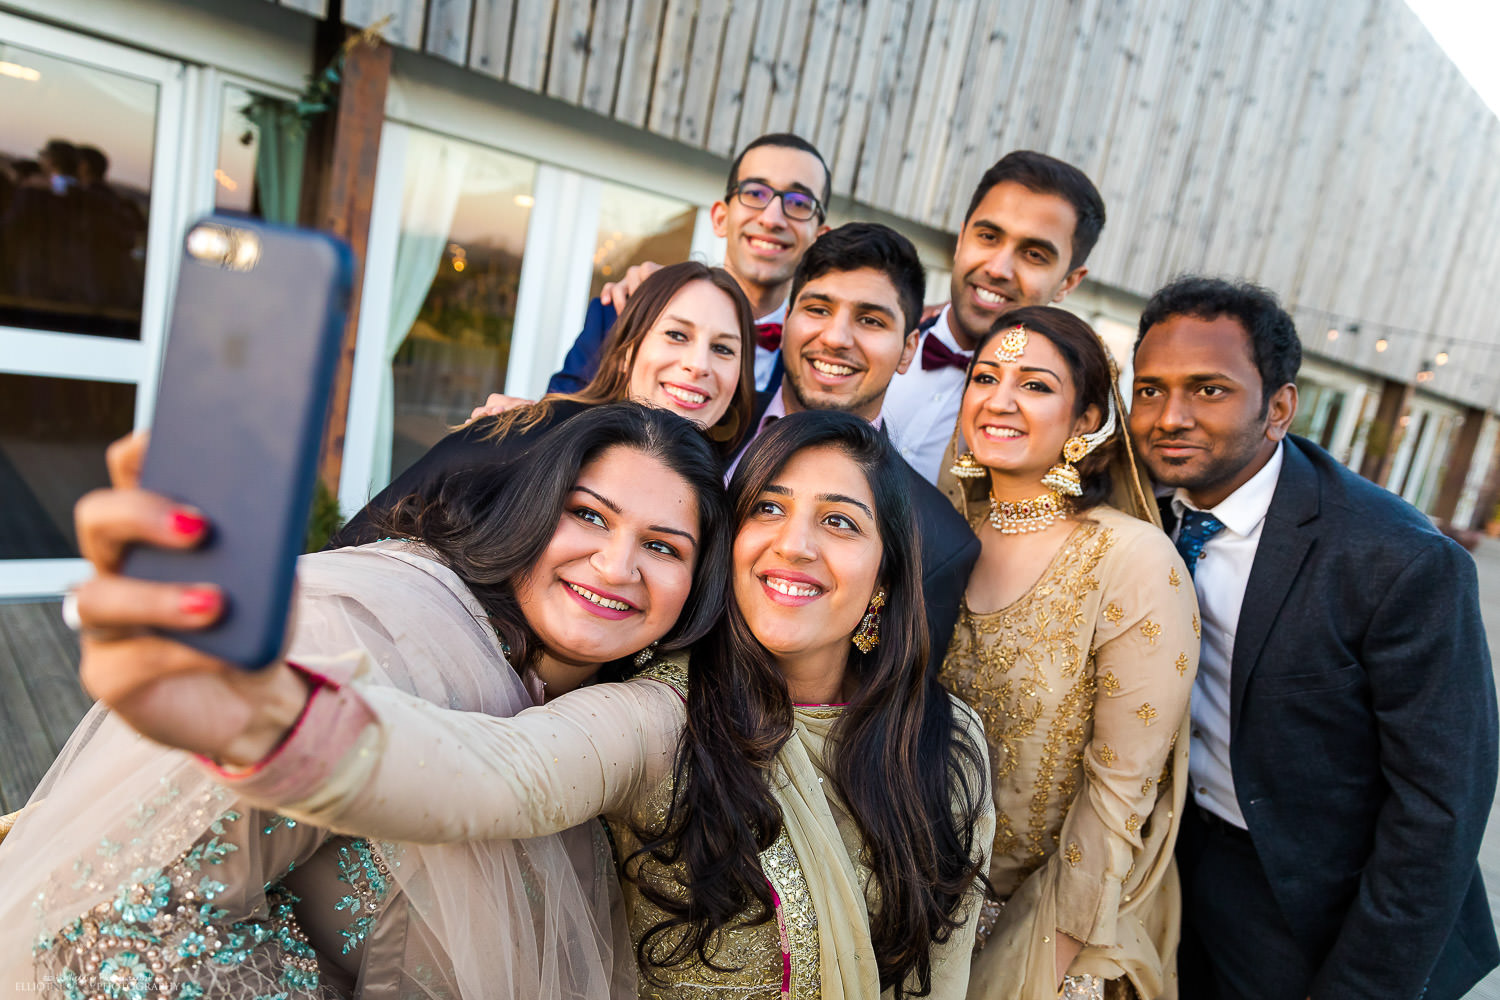 Selfie at the asian engagement party at Vallum Farm. Photo by Elliot Nichol Photography.